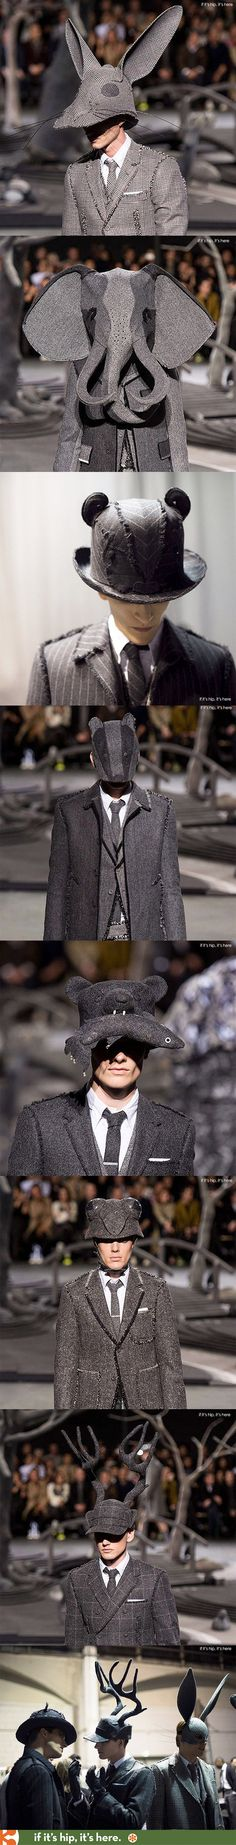 Animal Hats for Thom Browne's 2014 Fall Winter Collection by milliner Stephen Jones.